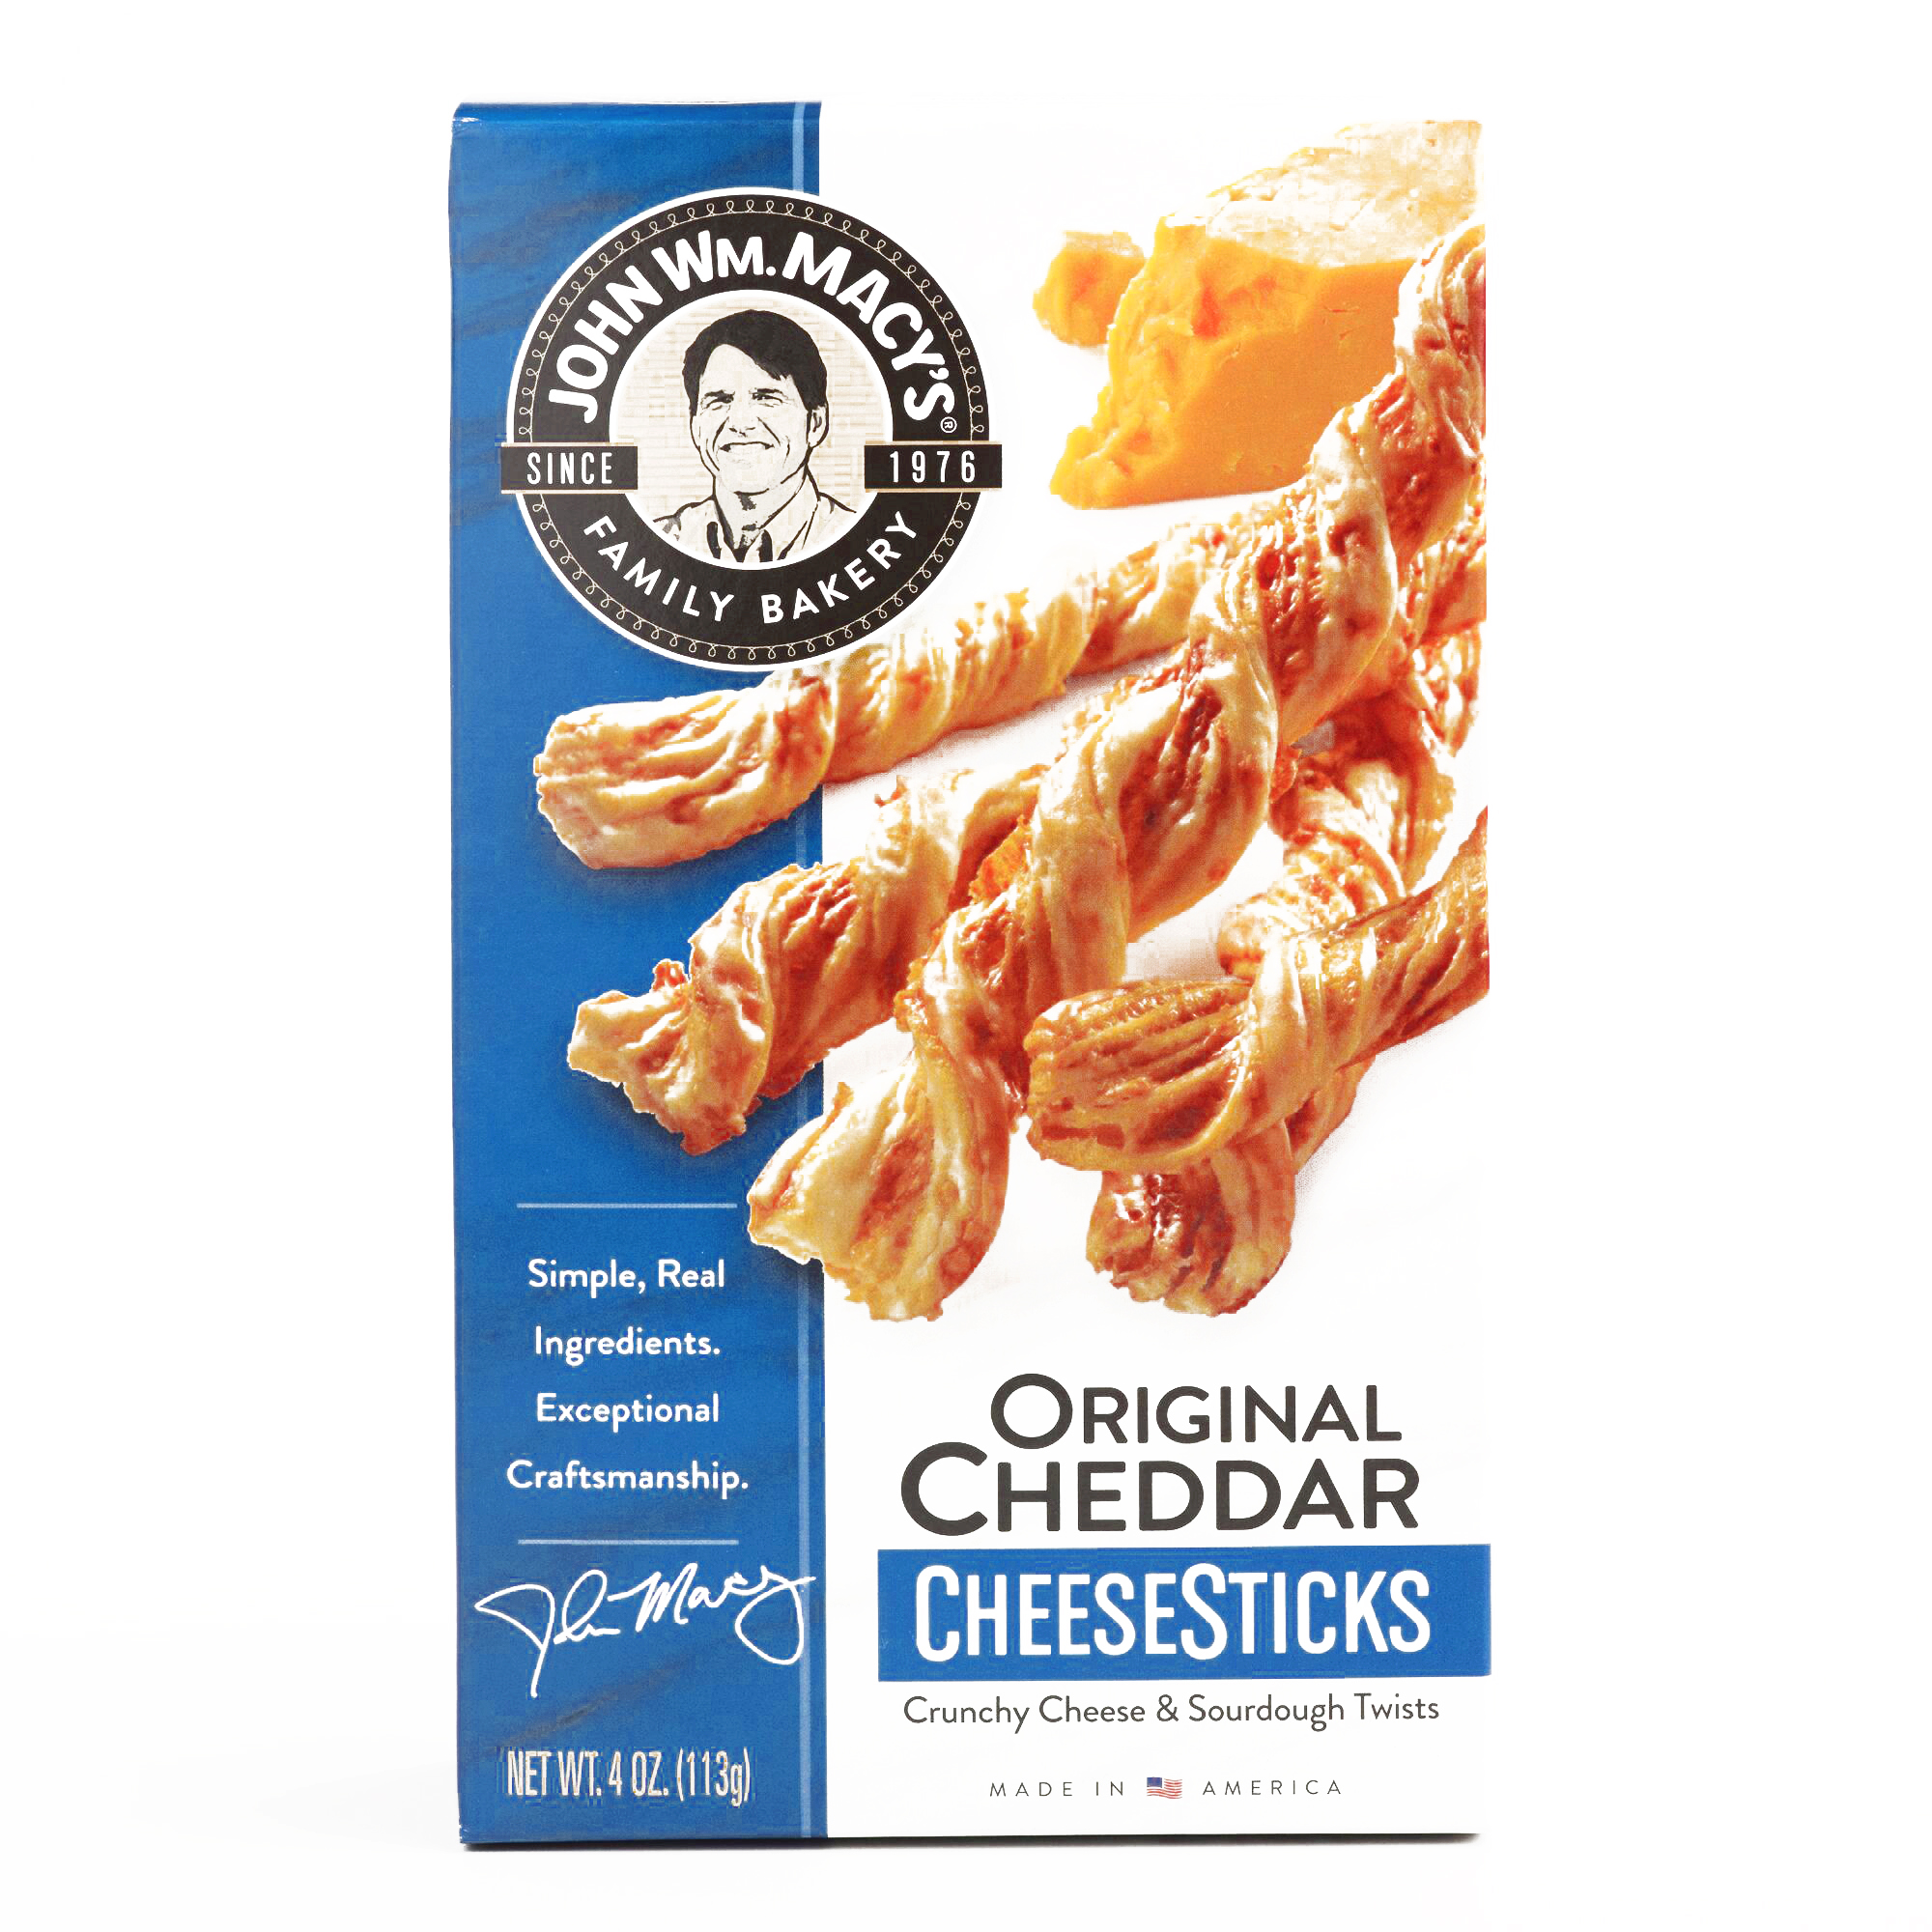 Macy's Cheddar Cheese Sticks 	4 oz each (1 Item Per Order, not per case)